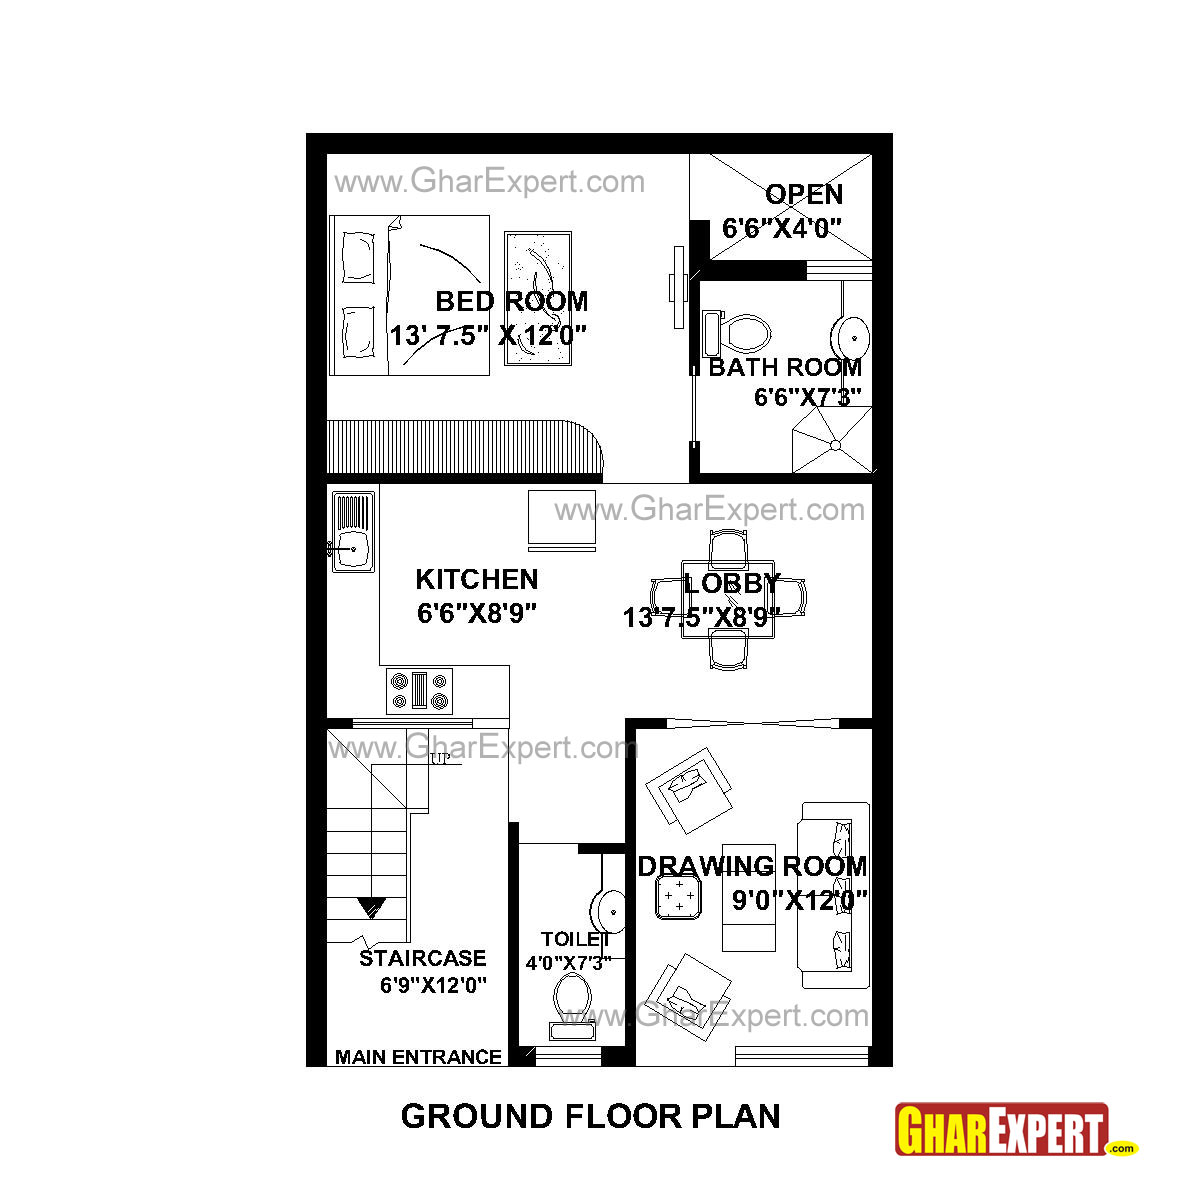 House Plan For 33 Feet By 40 Feet Plot Plot Size 147: House Plan For 22 Feet By 35 Feet Plot (Plot Size 86